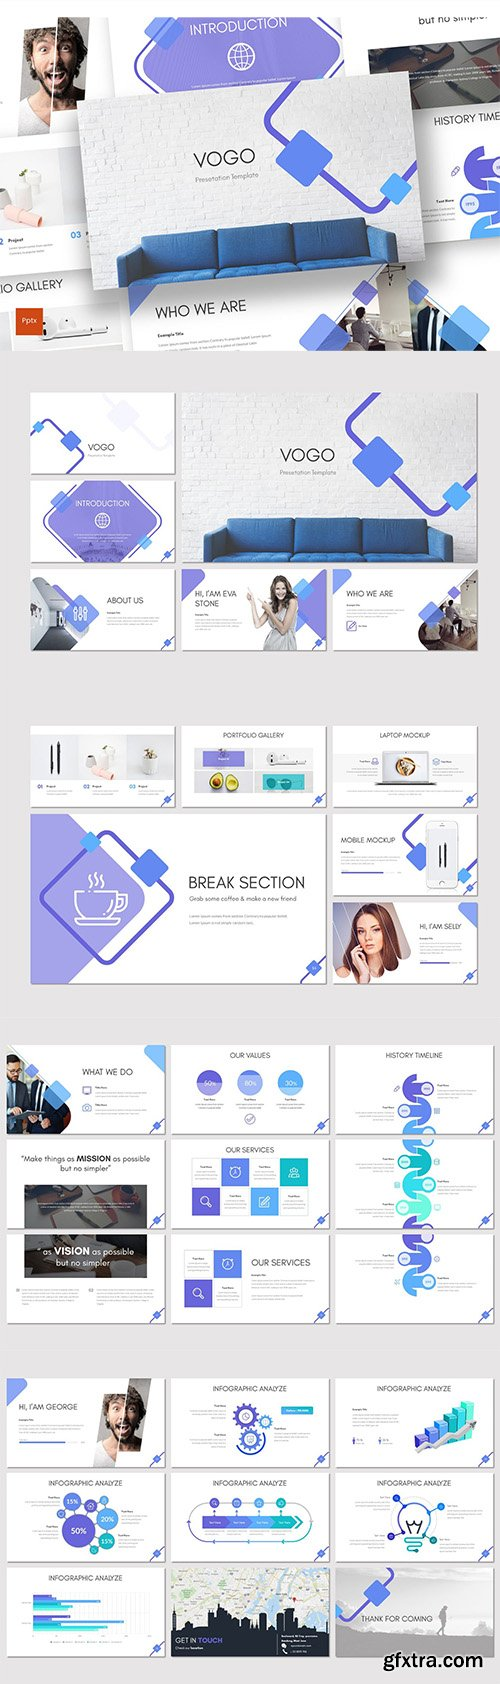 Vogo - Investment Powerpoint Template